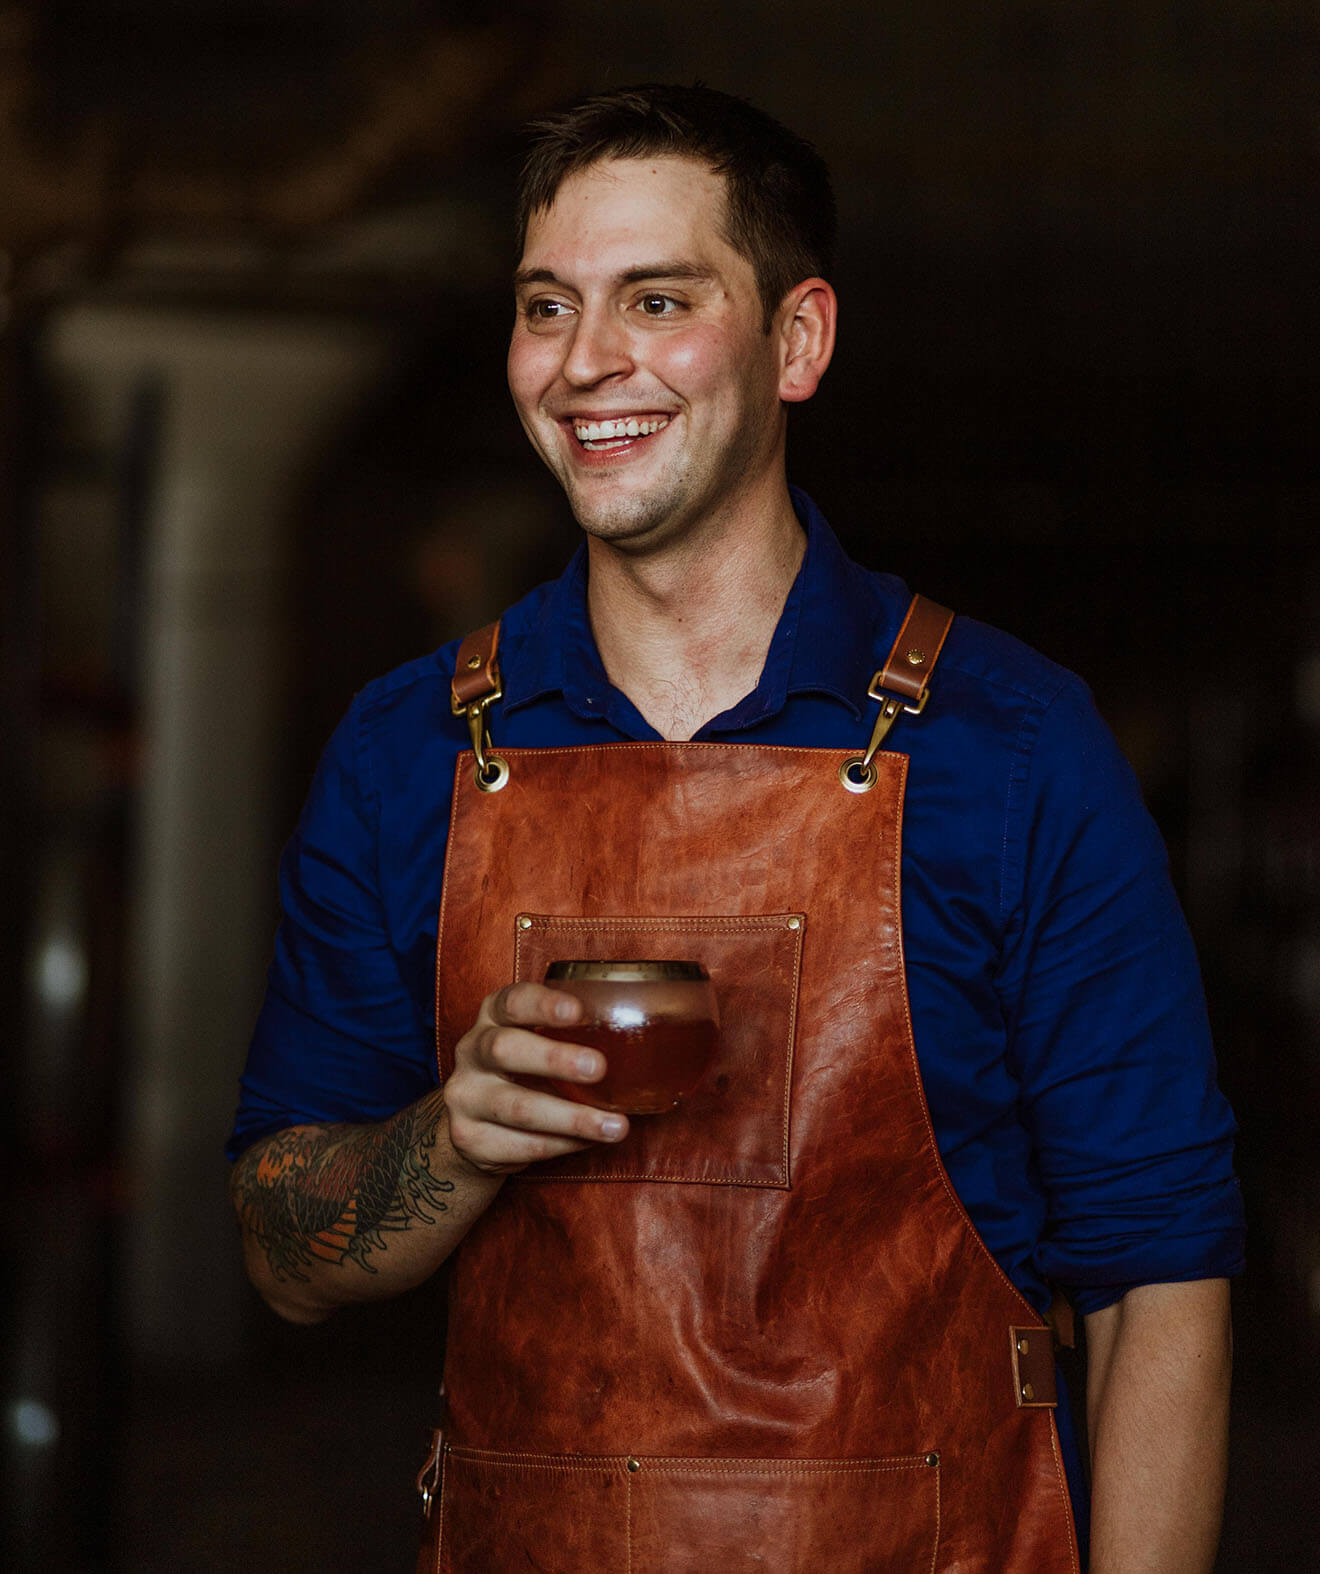 Marcelo Barredo, standing and smiling with winning cocktail